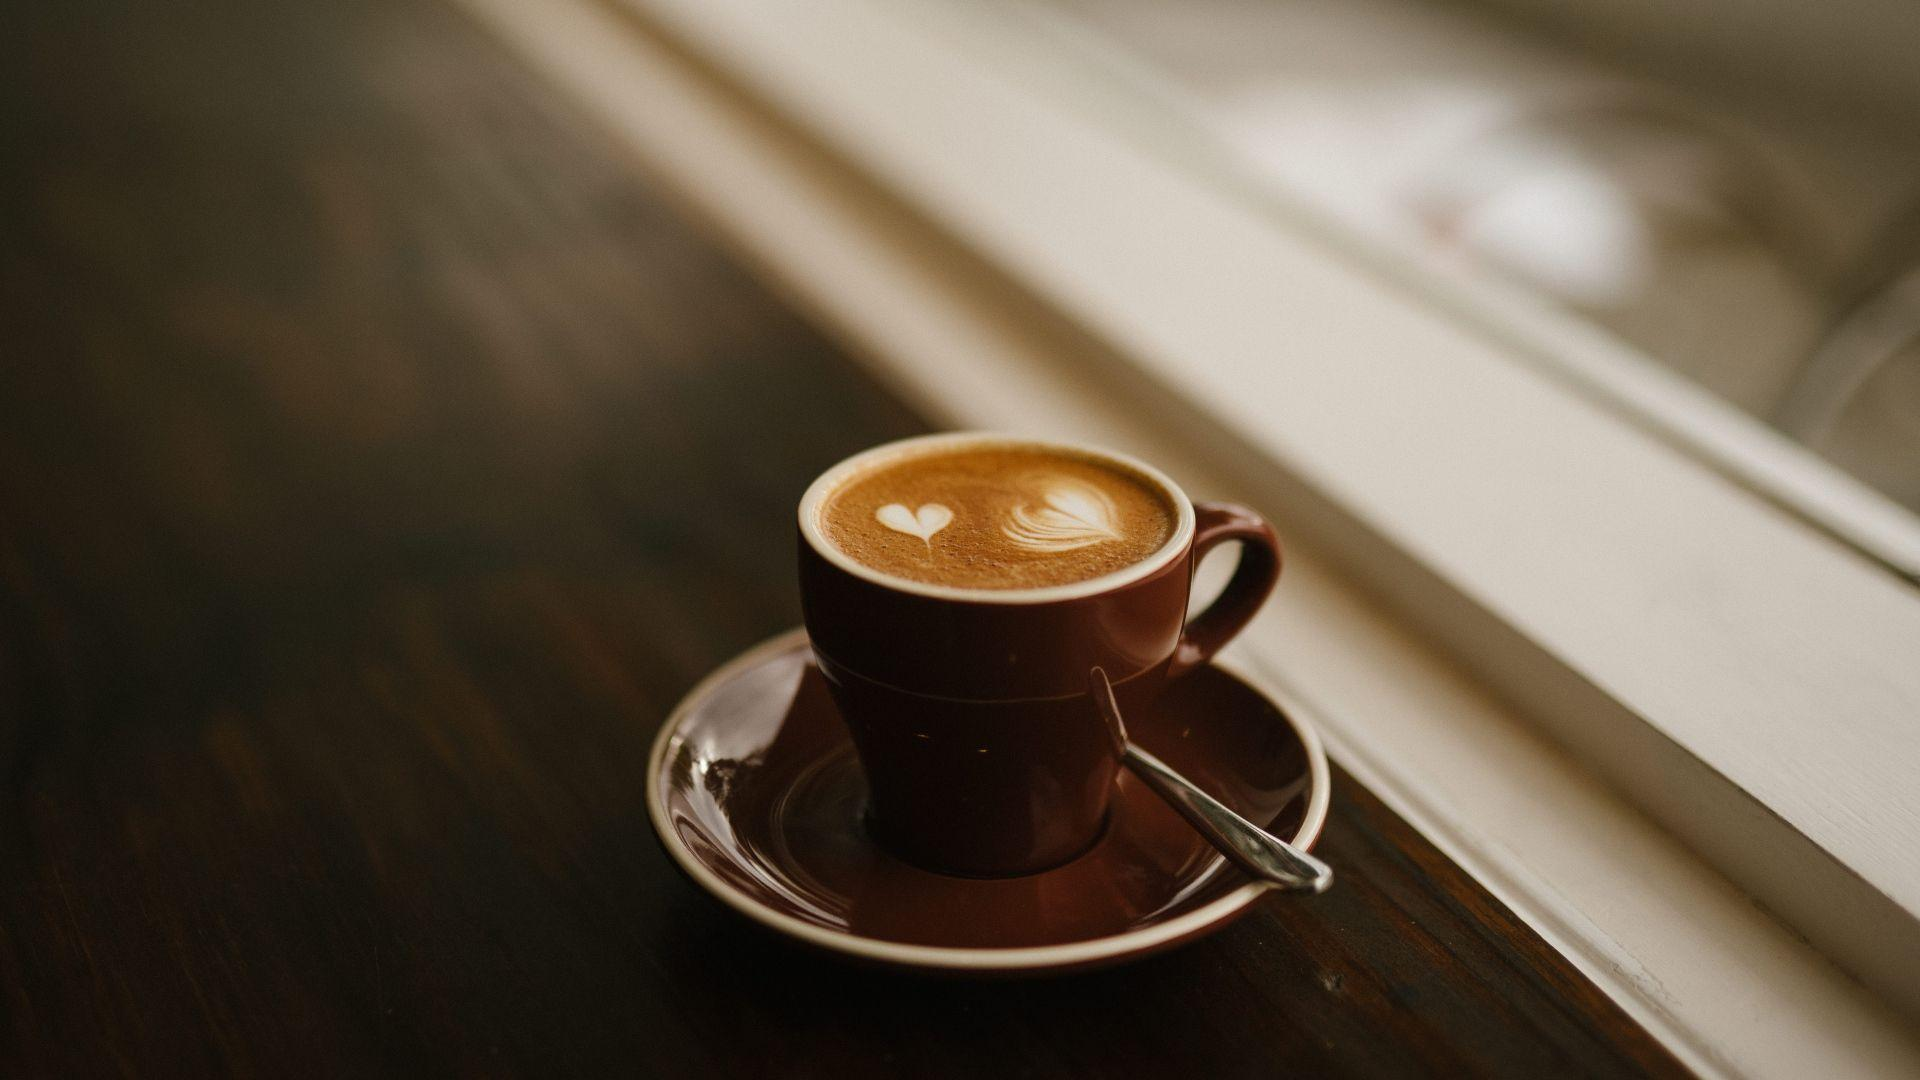 cup of coffee images hd